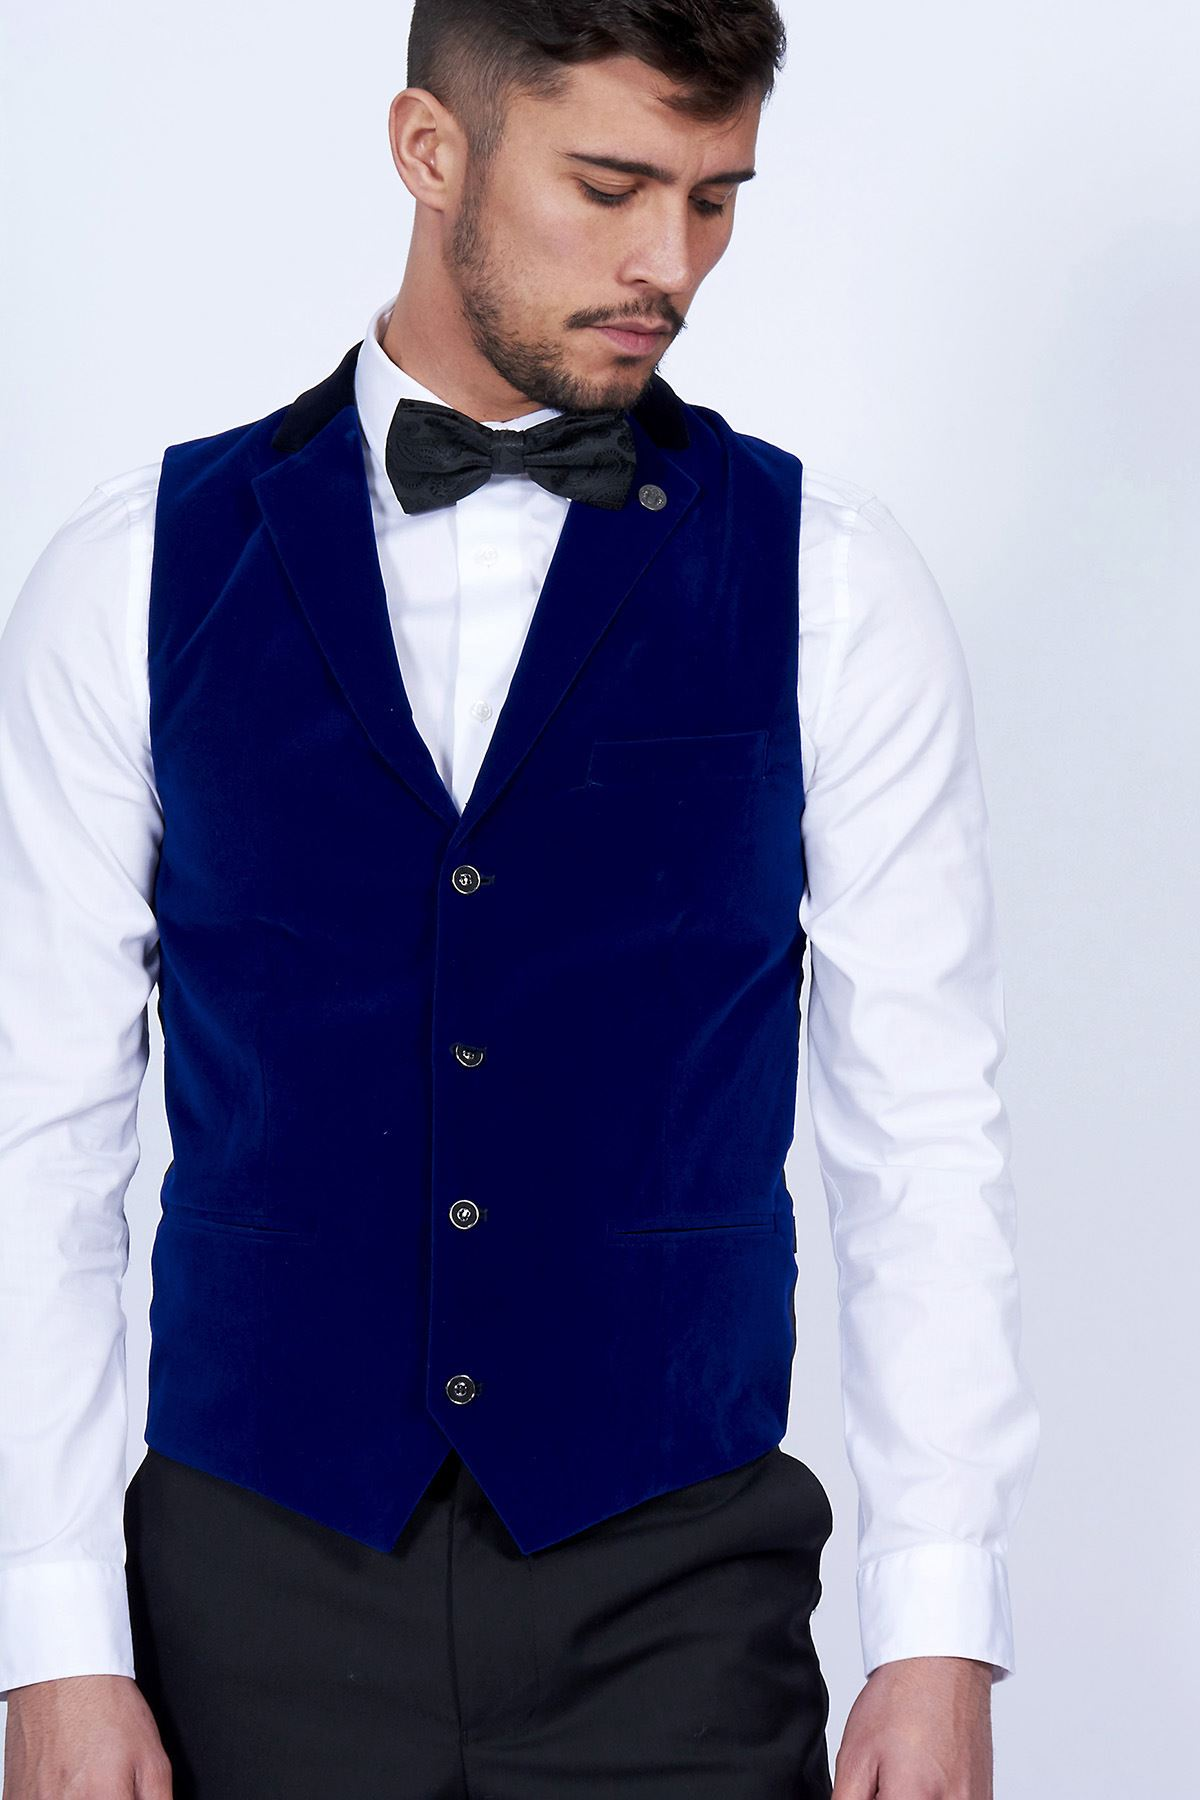 ebd7dbb4e1d5 Details about Mens Collared Velvet Waistcoat Marc Darcy Formal Casual  Tailored Party Vest